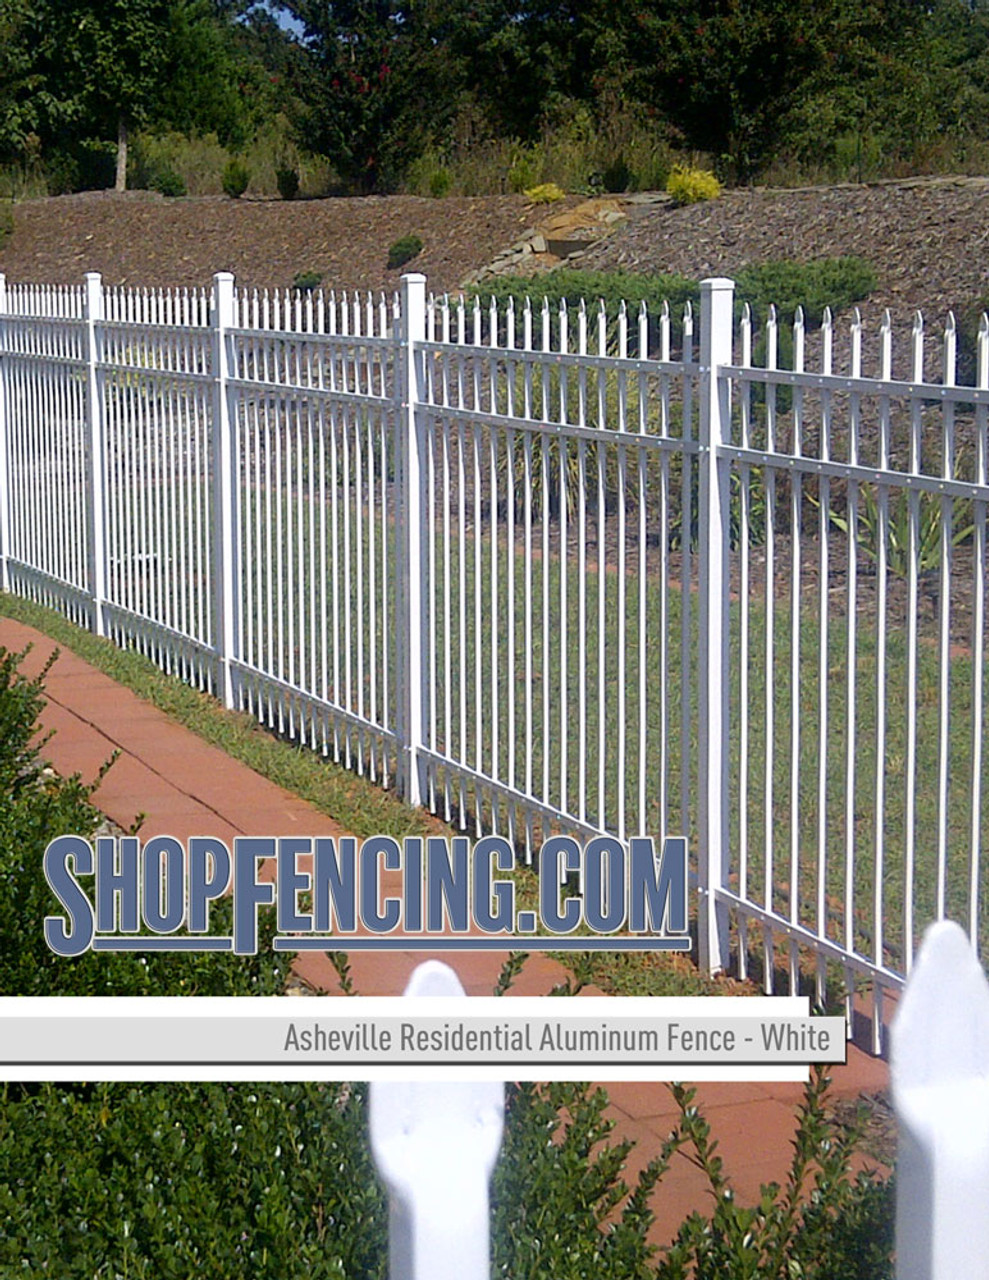 White Residential Asheville Aluminum Fencing From ShopFencing.com